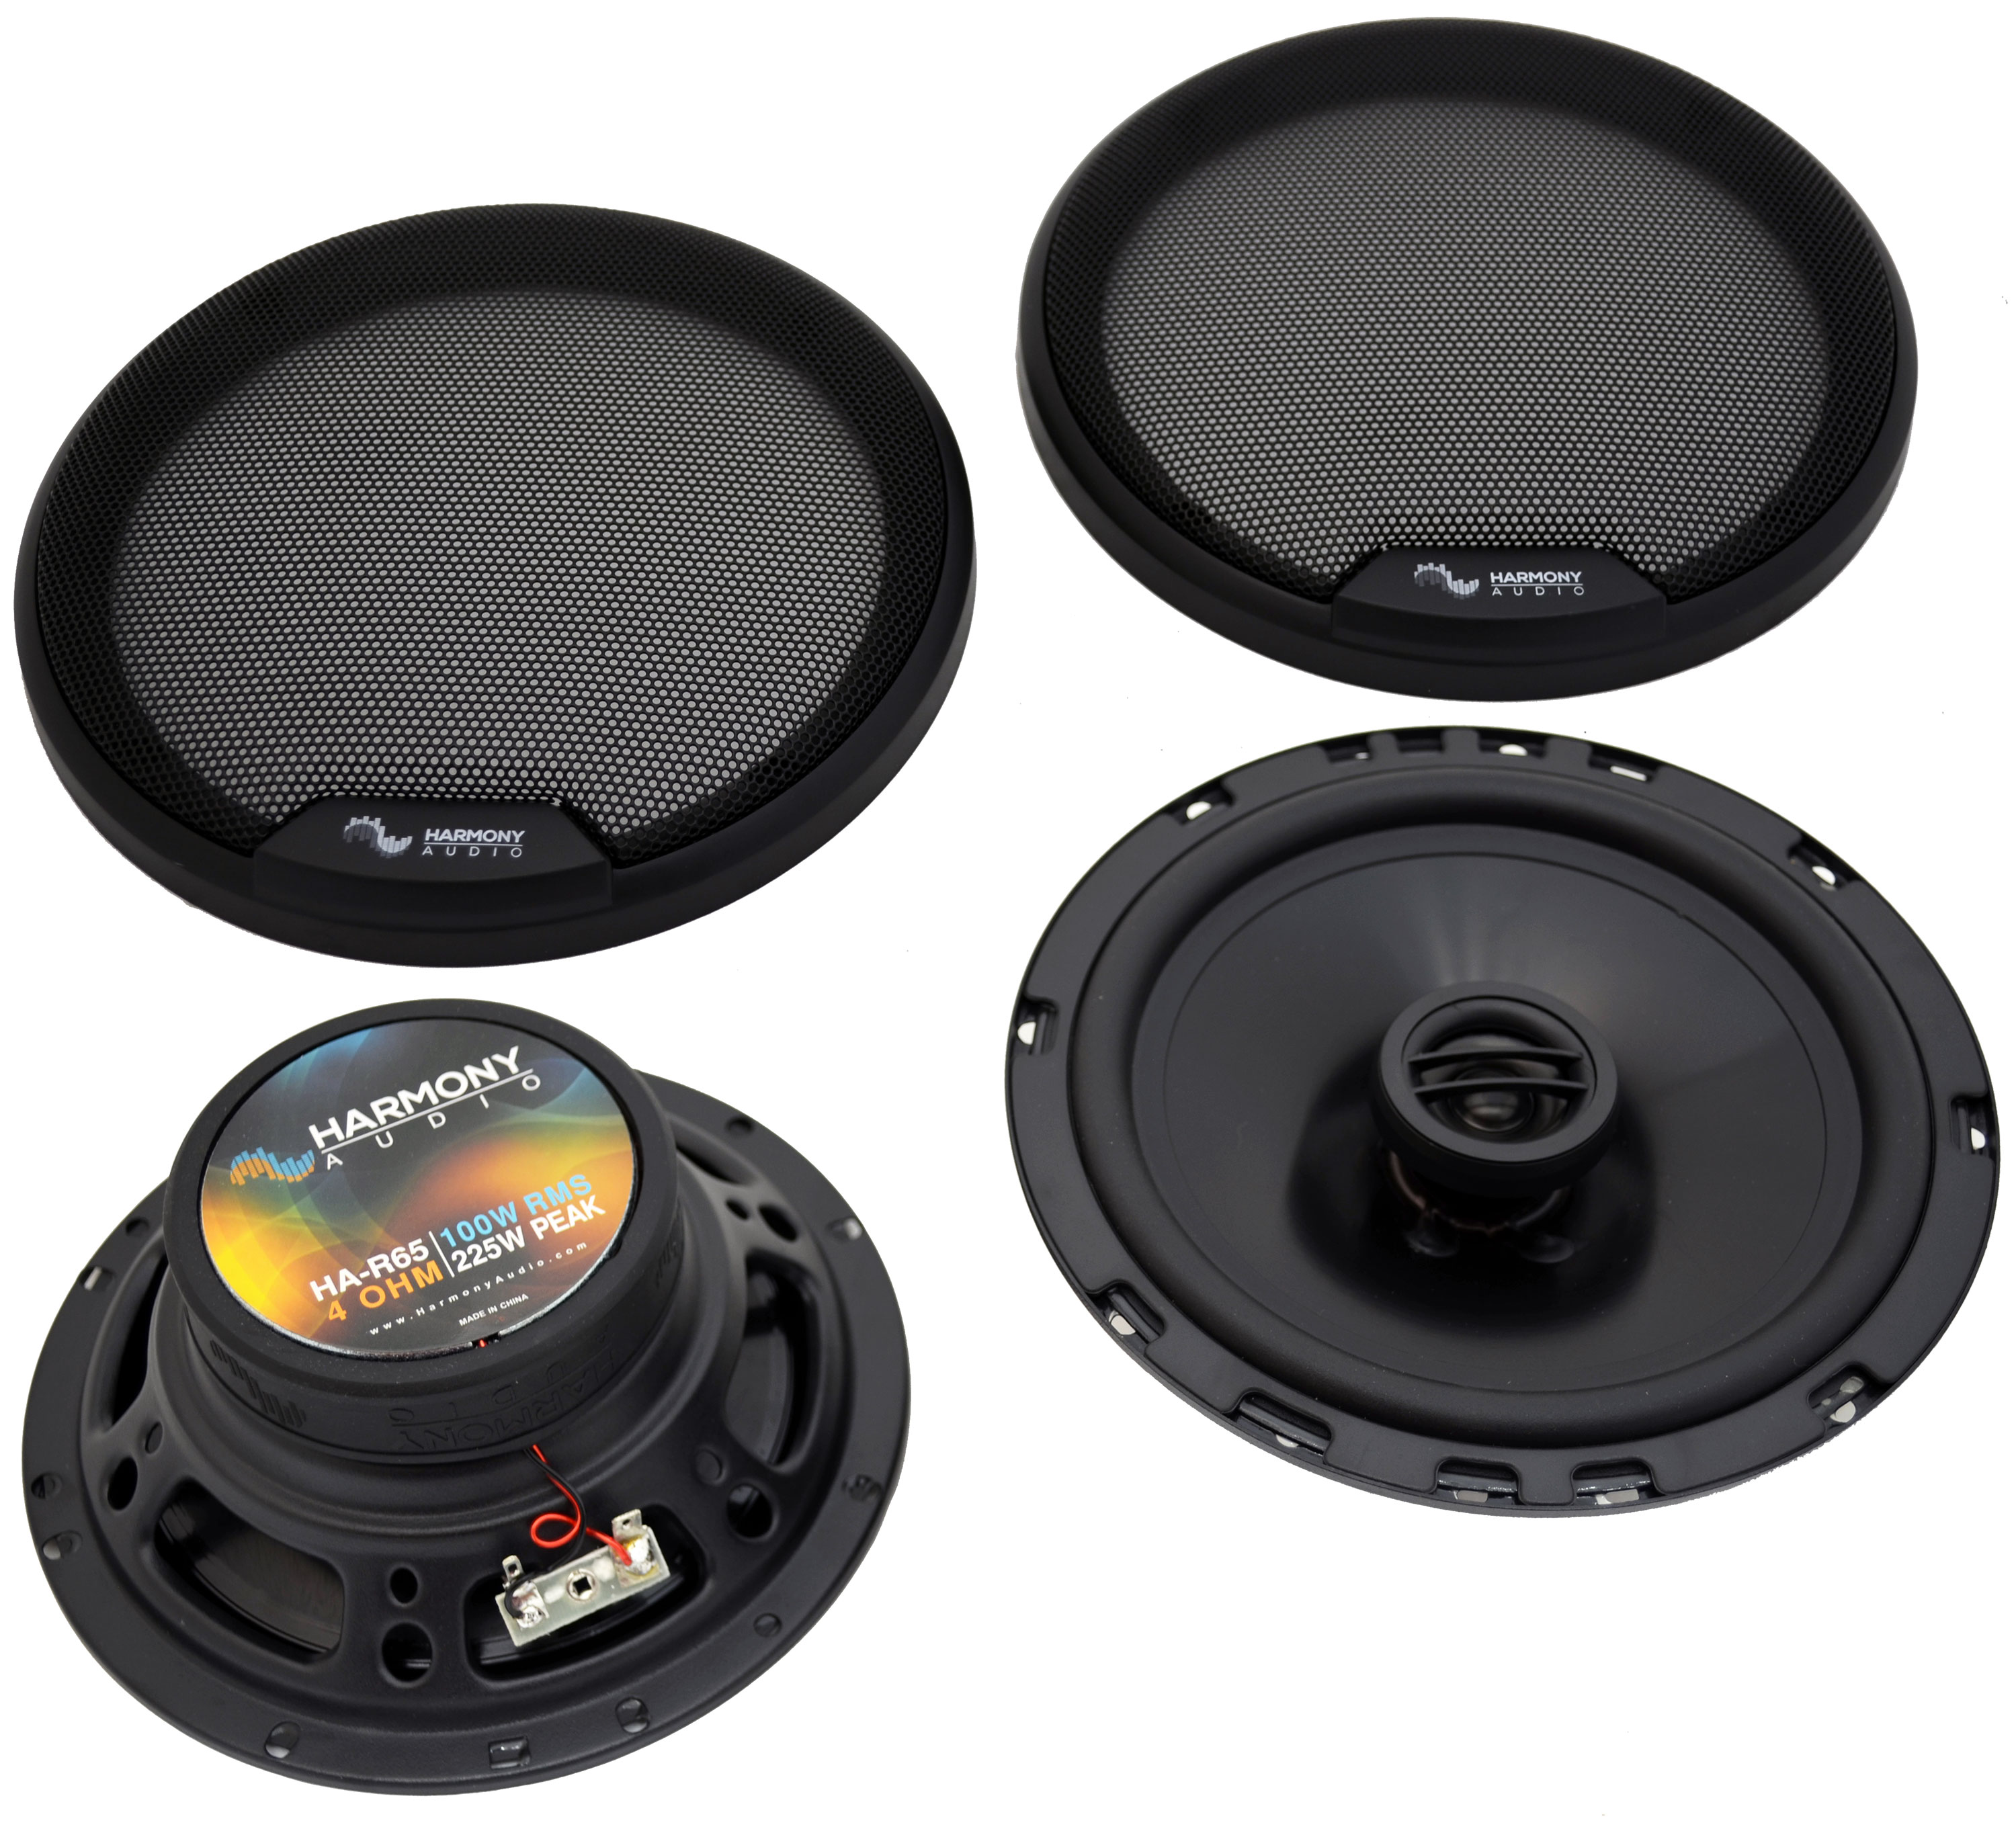 Fits Audi 80 Series 1988-1996 Rear Deck Replacement Speaker HA-R65 Speakers New